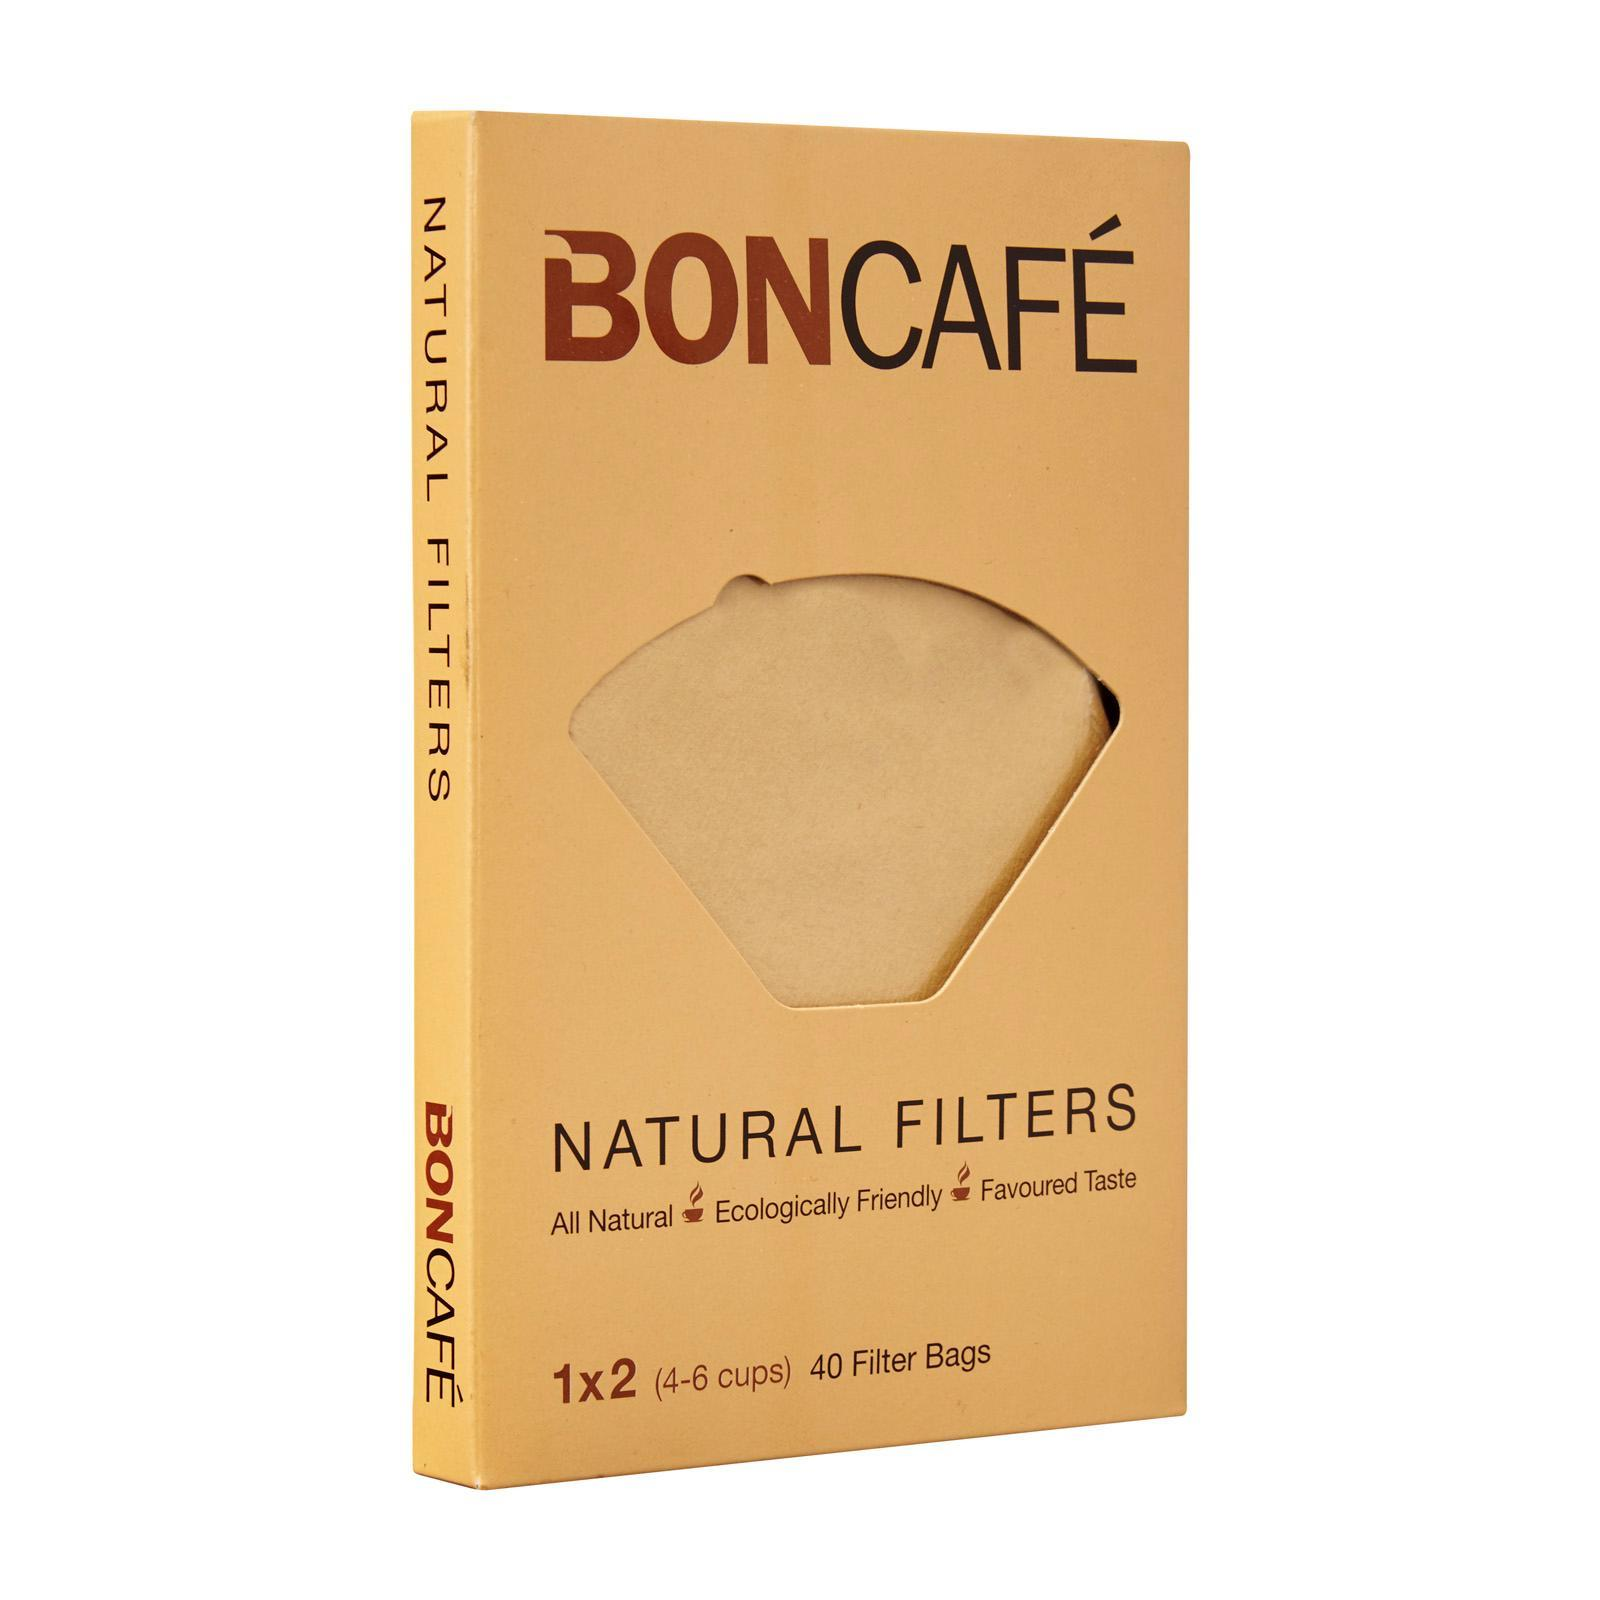 Boncafe Natural Filters (4-6 Cups)